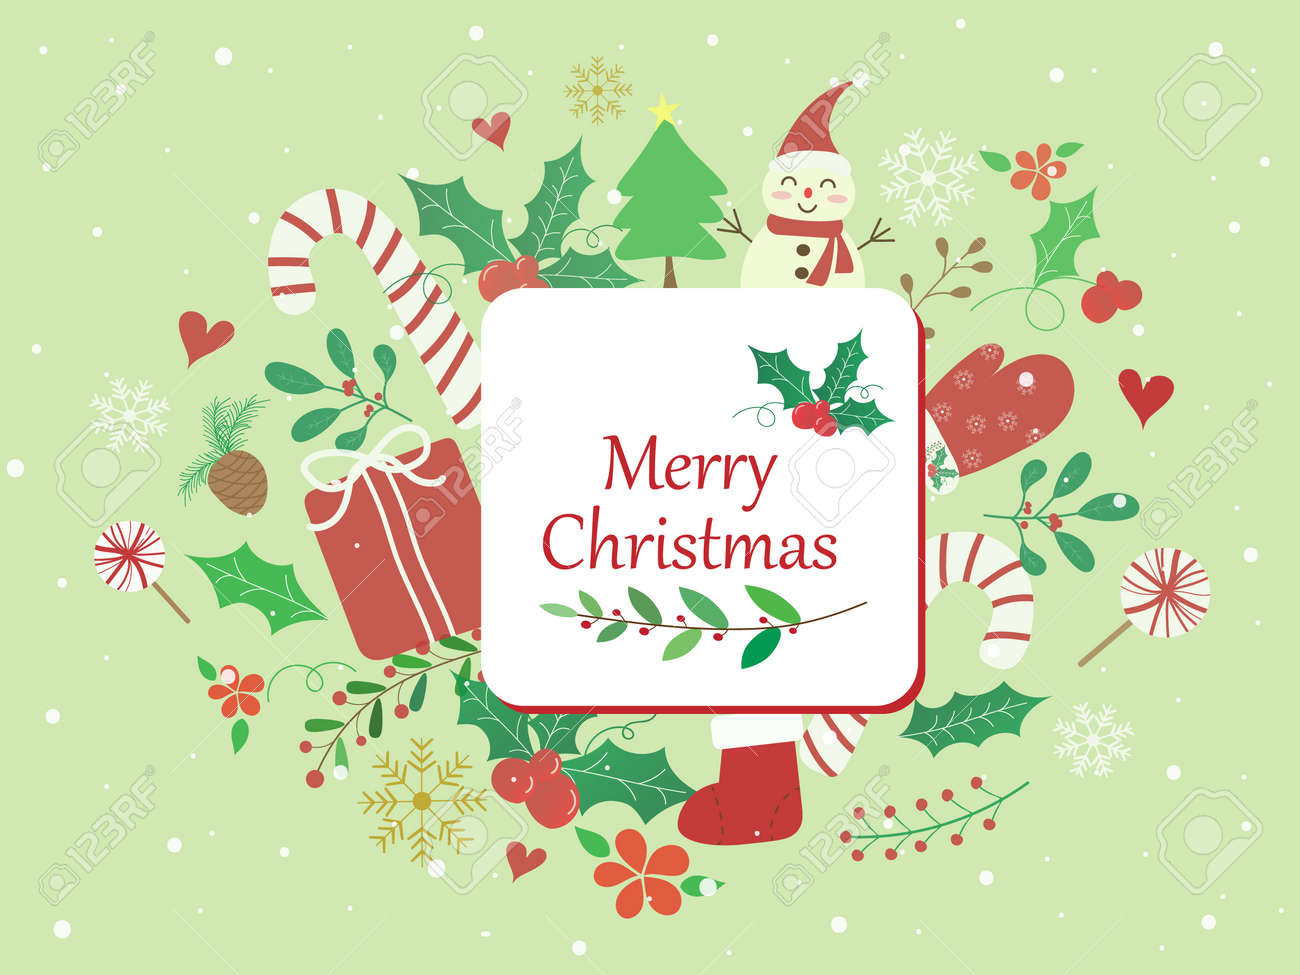 Sweet and beautiful Christmas background with candy cane, gift box,mistletoe, snowman and text Merry Christmas on pastel green wallpaper. Cute vector art with snowfall for xmas and new year design. - 157330037